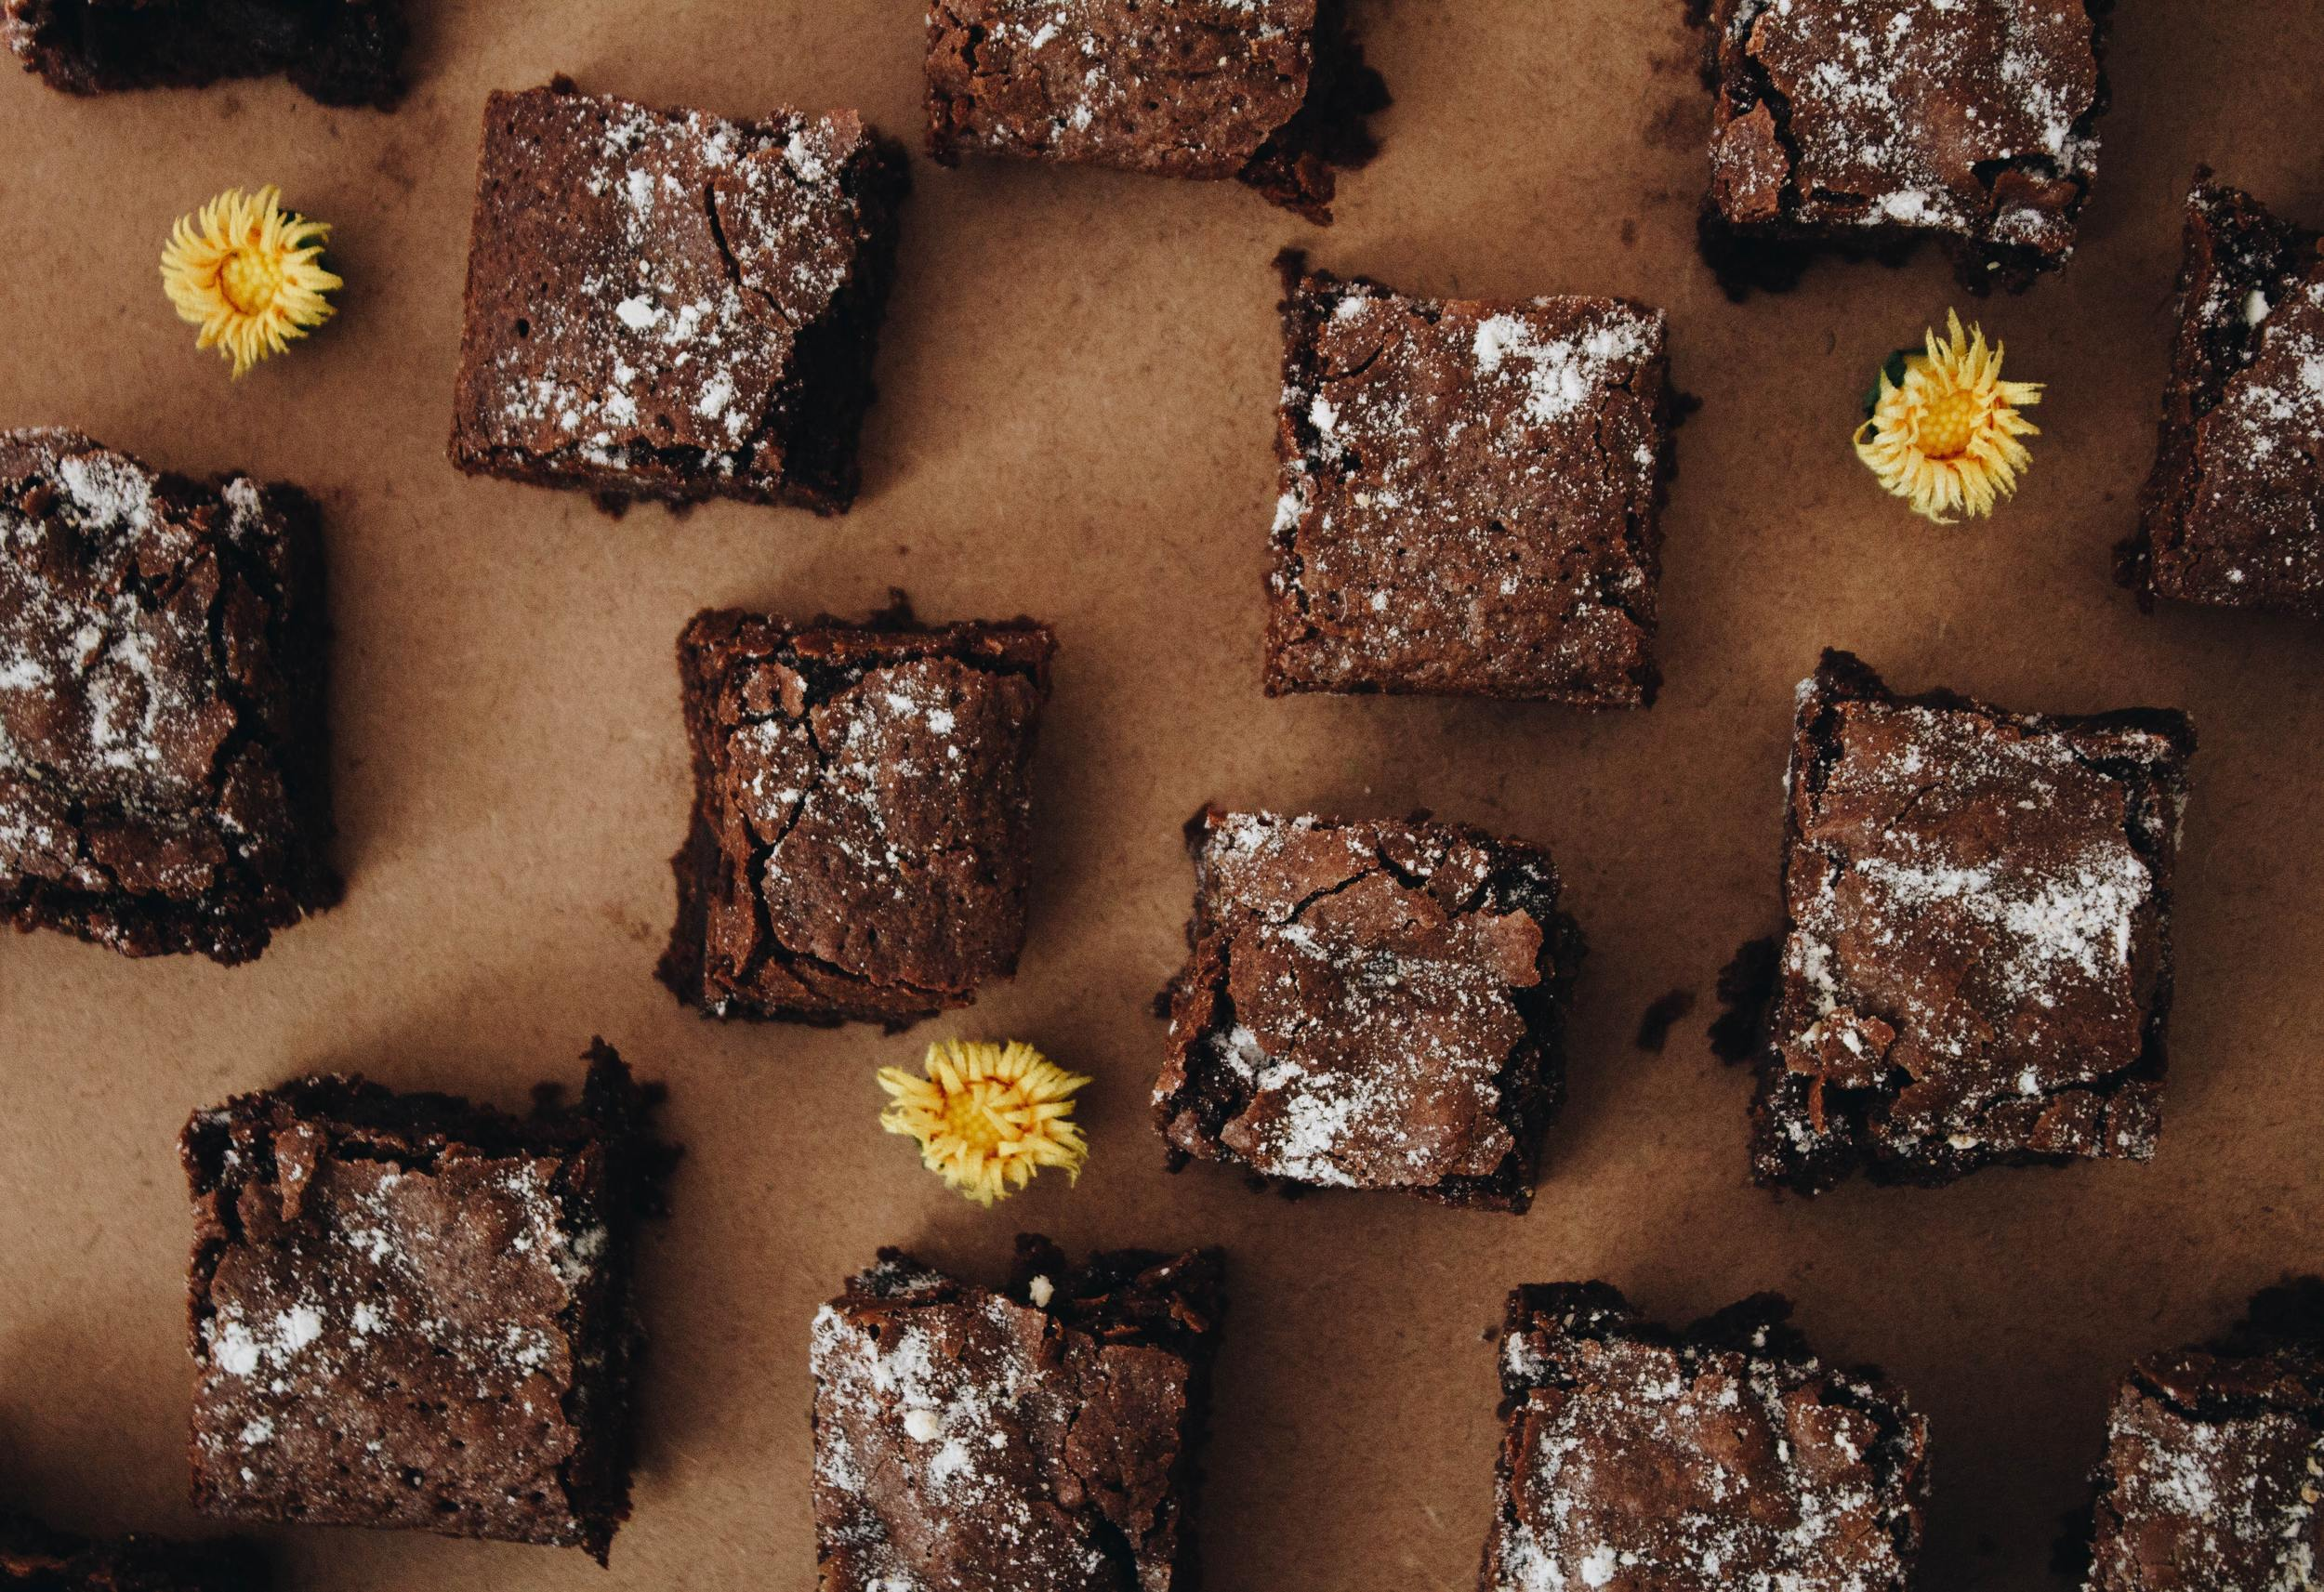 Moist and gooey chocolate brownie bites, on a cutting board with decorative, edible flowers around them